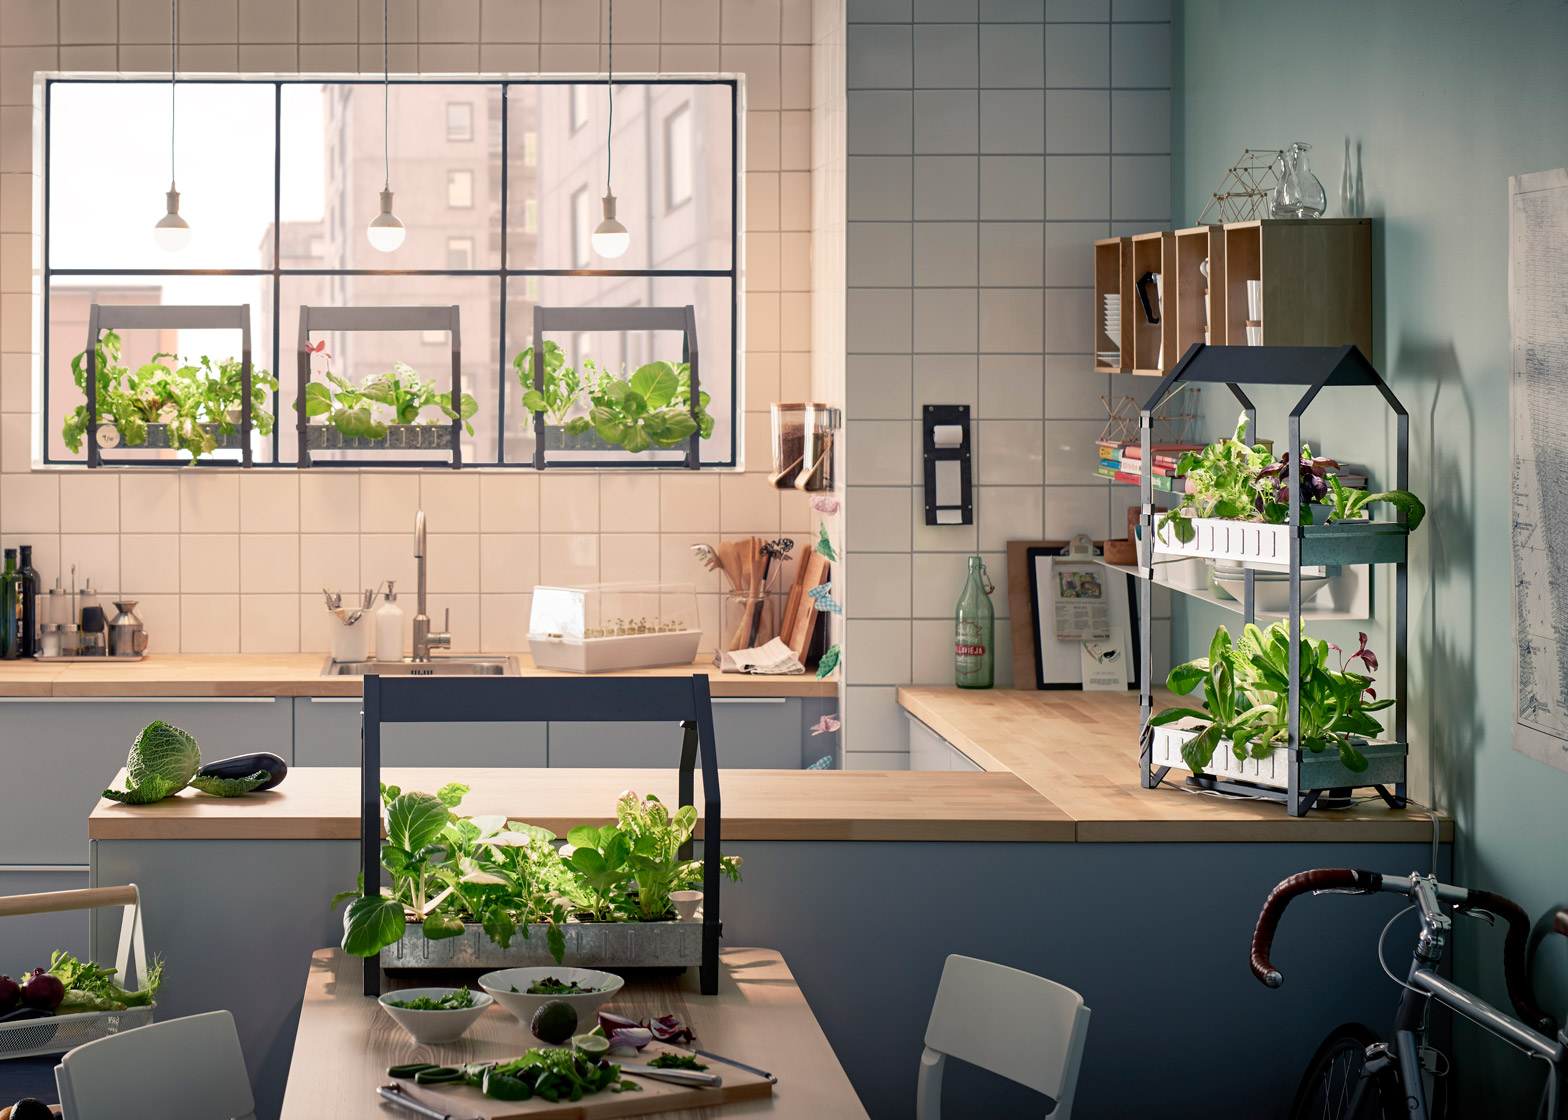 Ikea moves into indoor gardening with hydroponic kit 17 of 17 ikea introduce a hydroponic indoor gardening kit workwithnaturefo